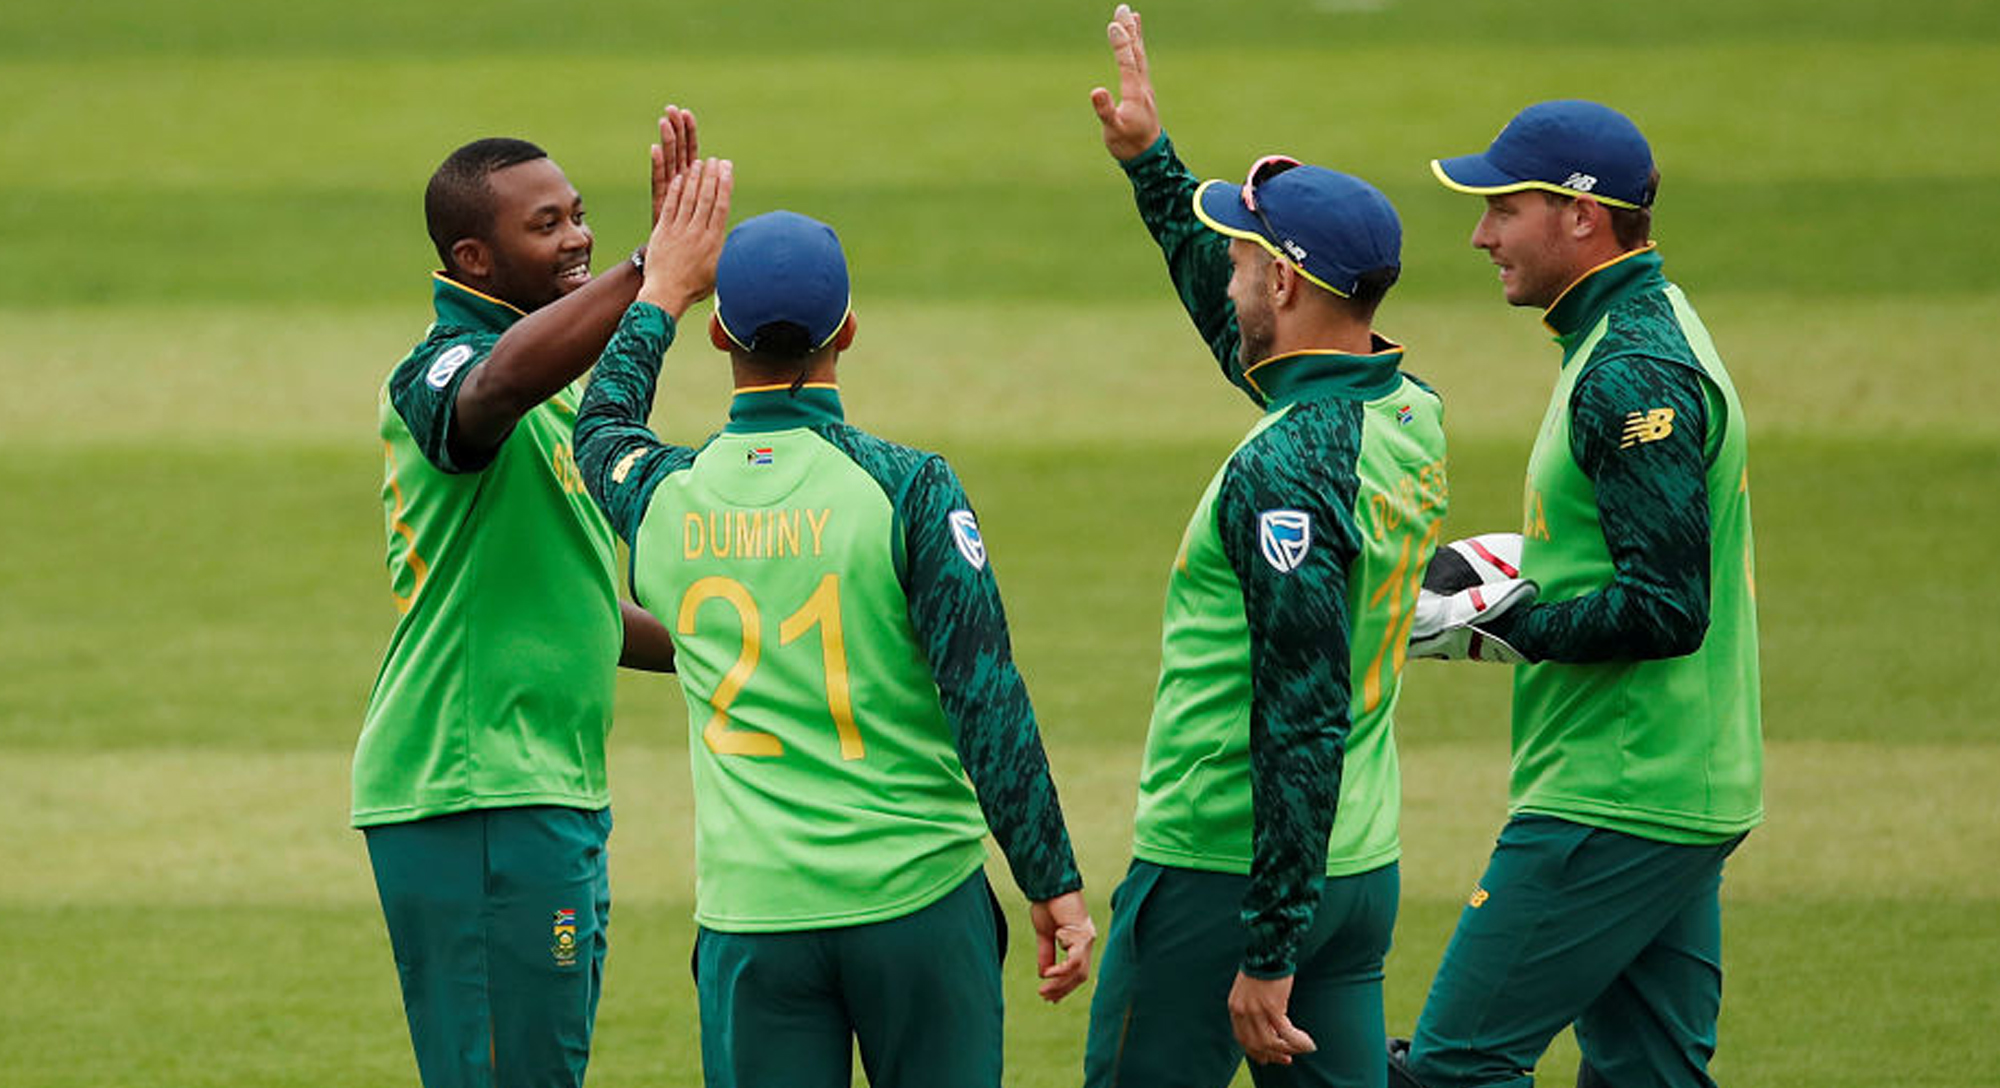 World Cup 2019: England vs South Africa